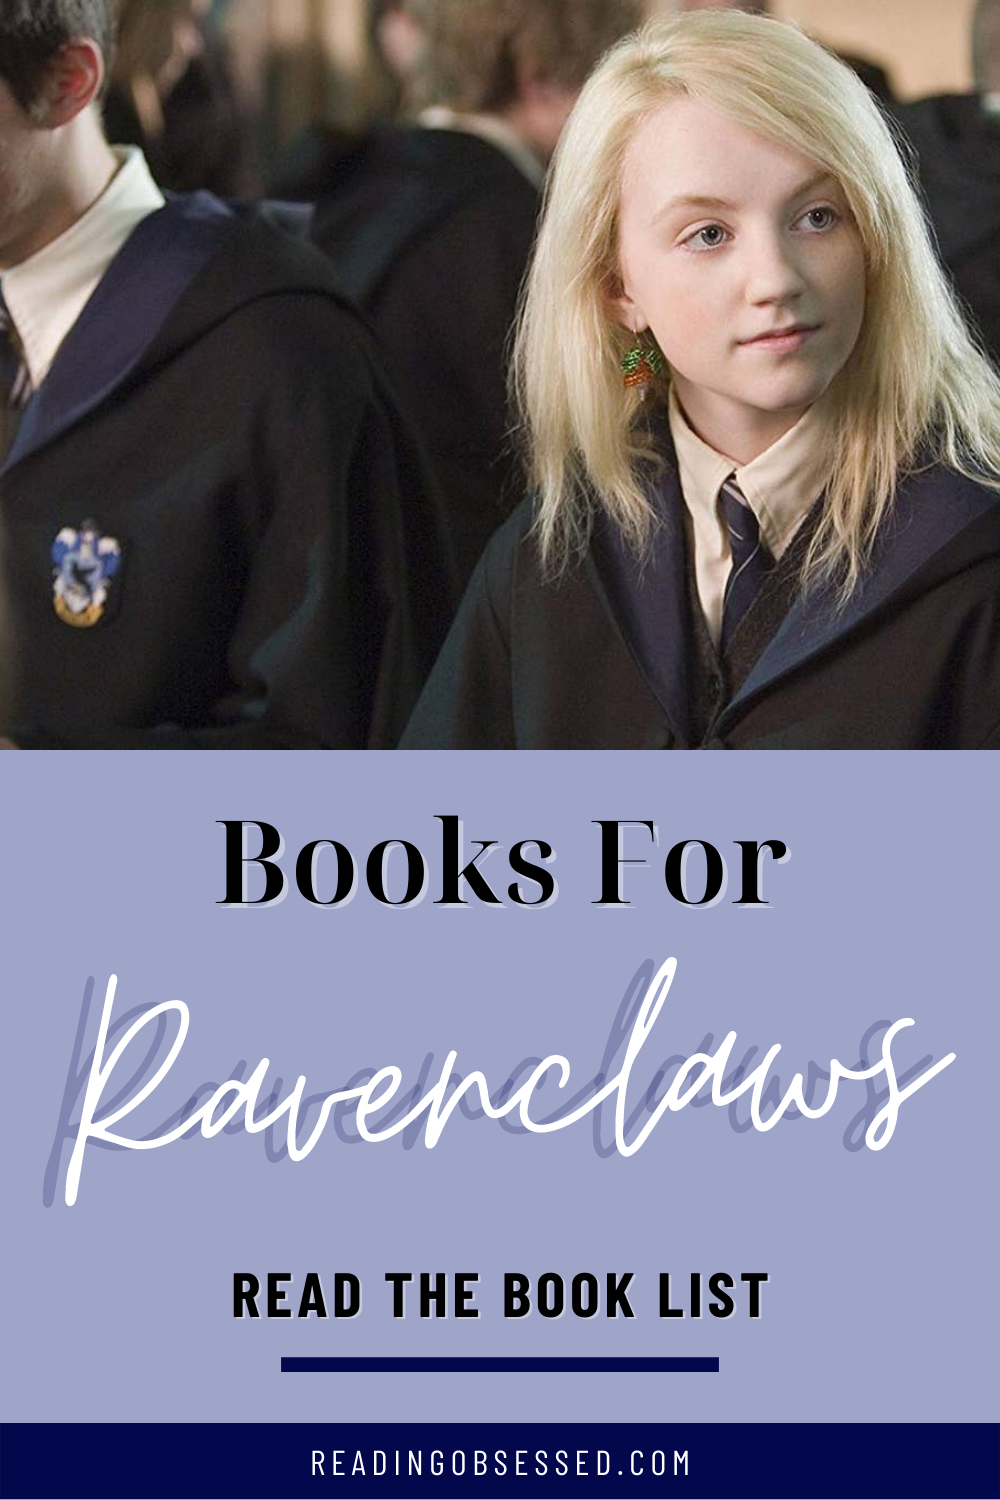 Books for Ravenclaws